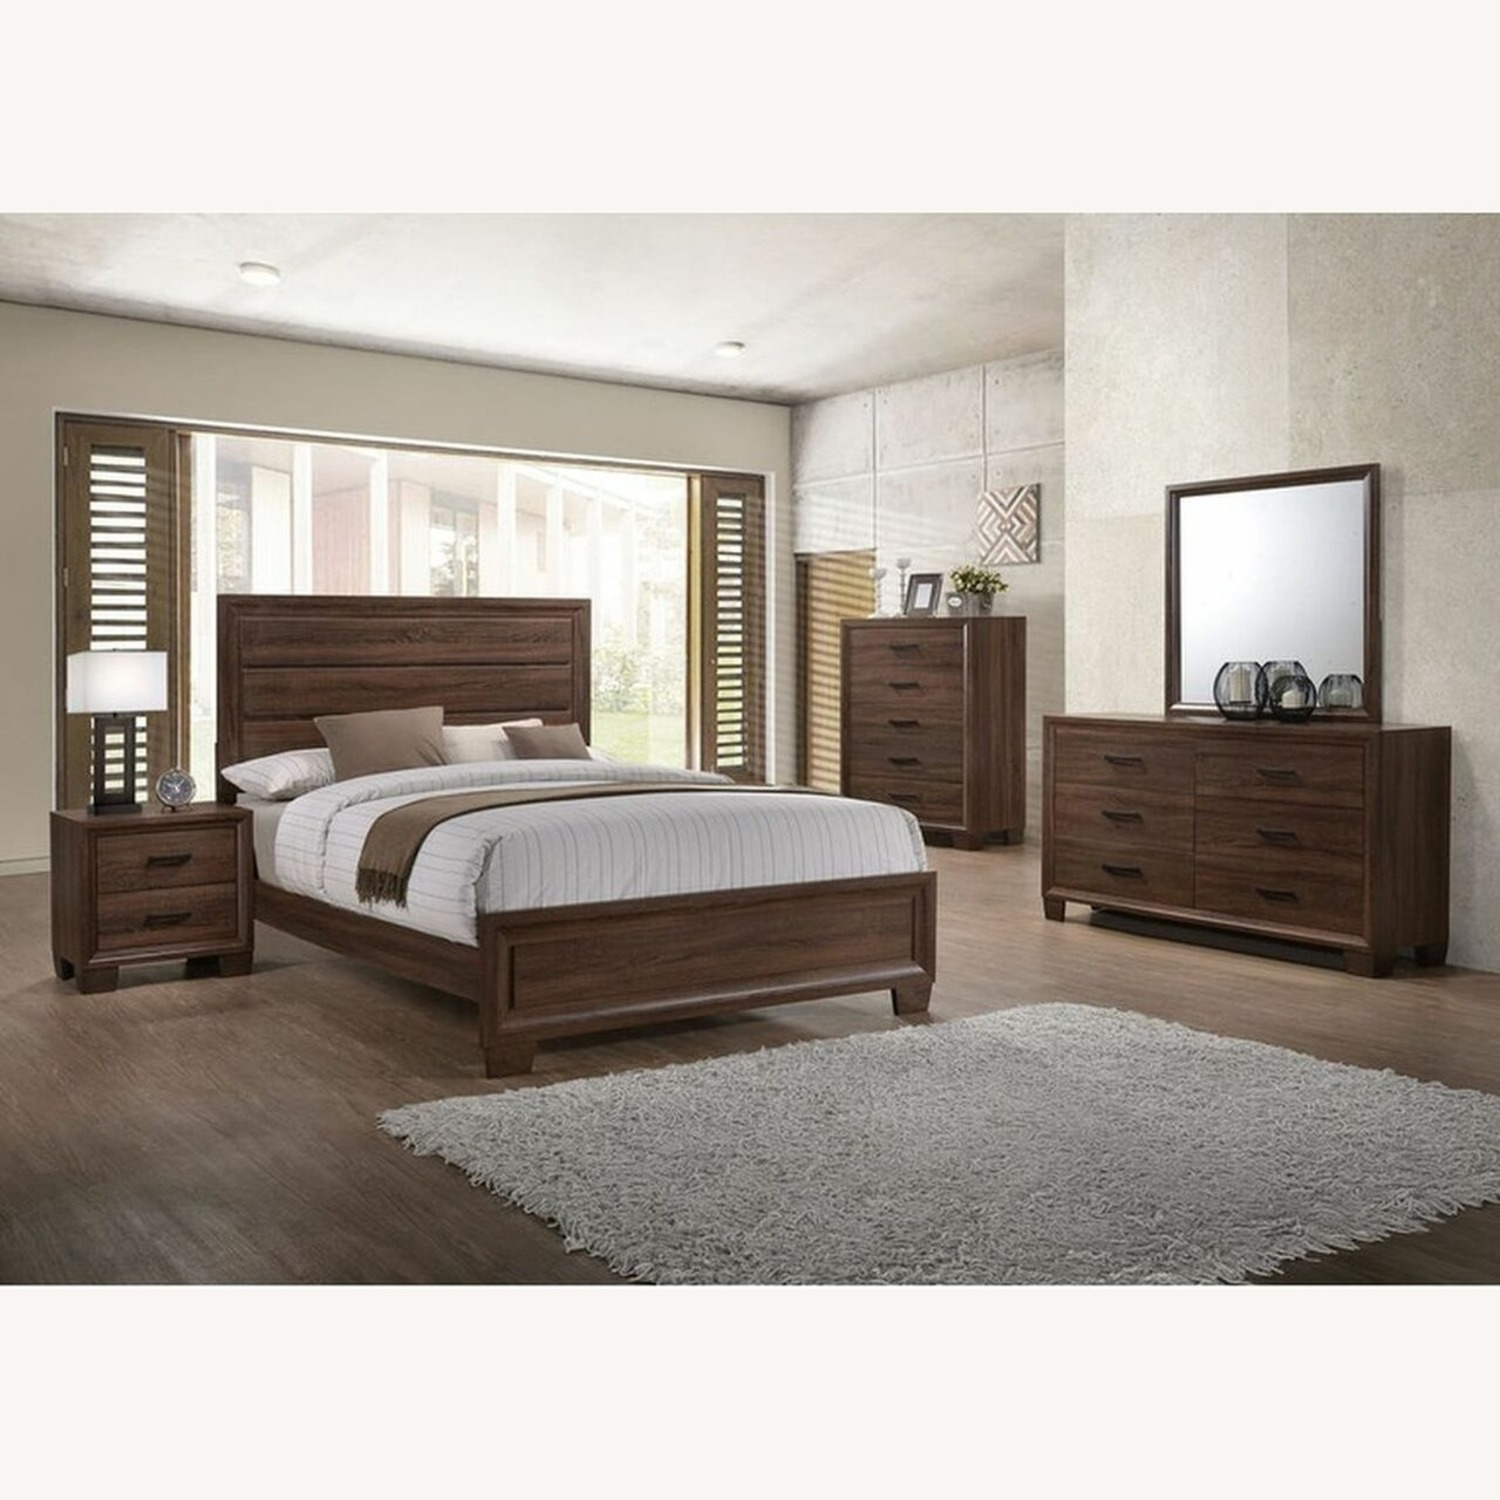 King Bed In Medium Warm Brown Wood Finish - image-3